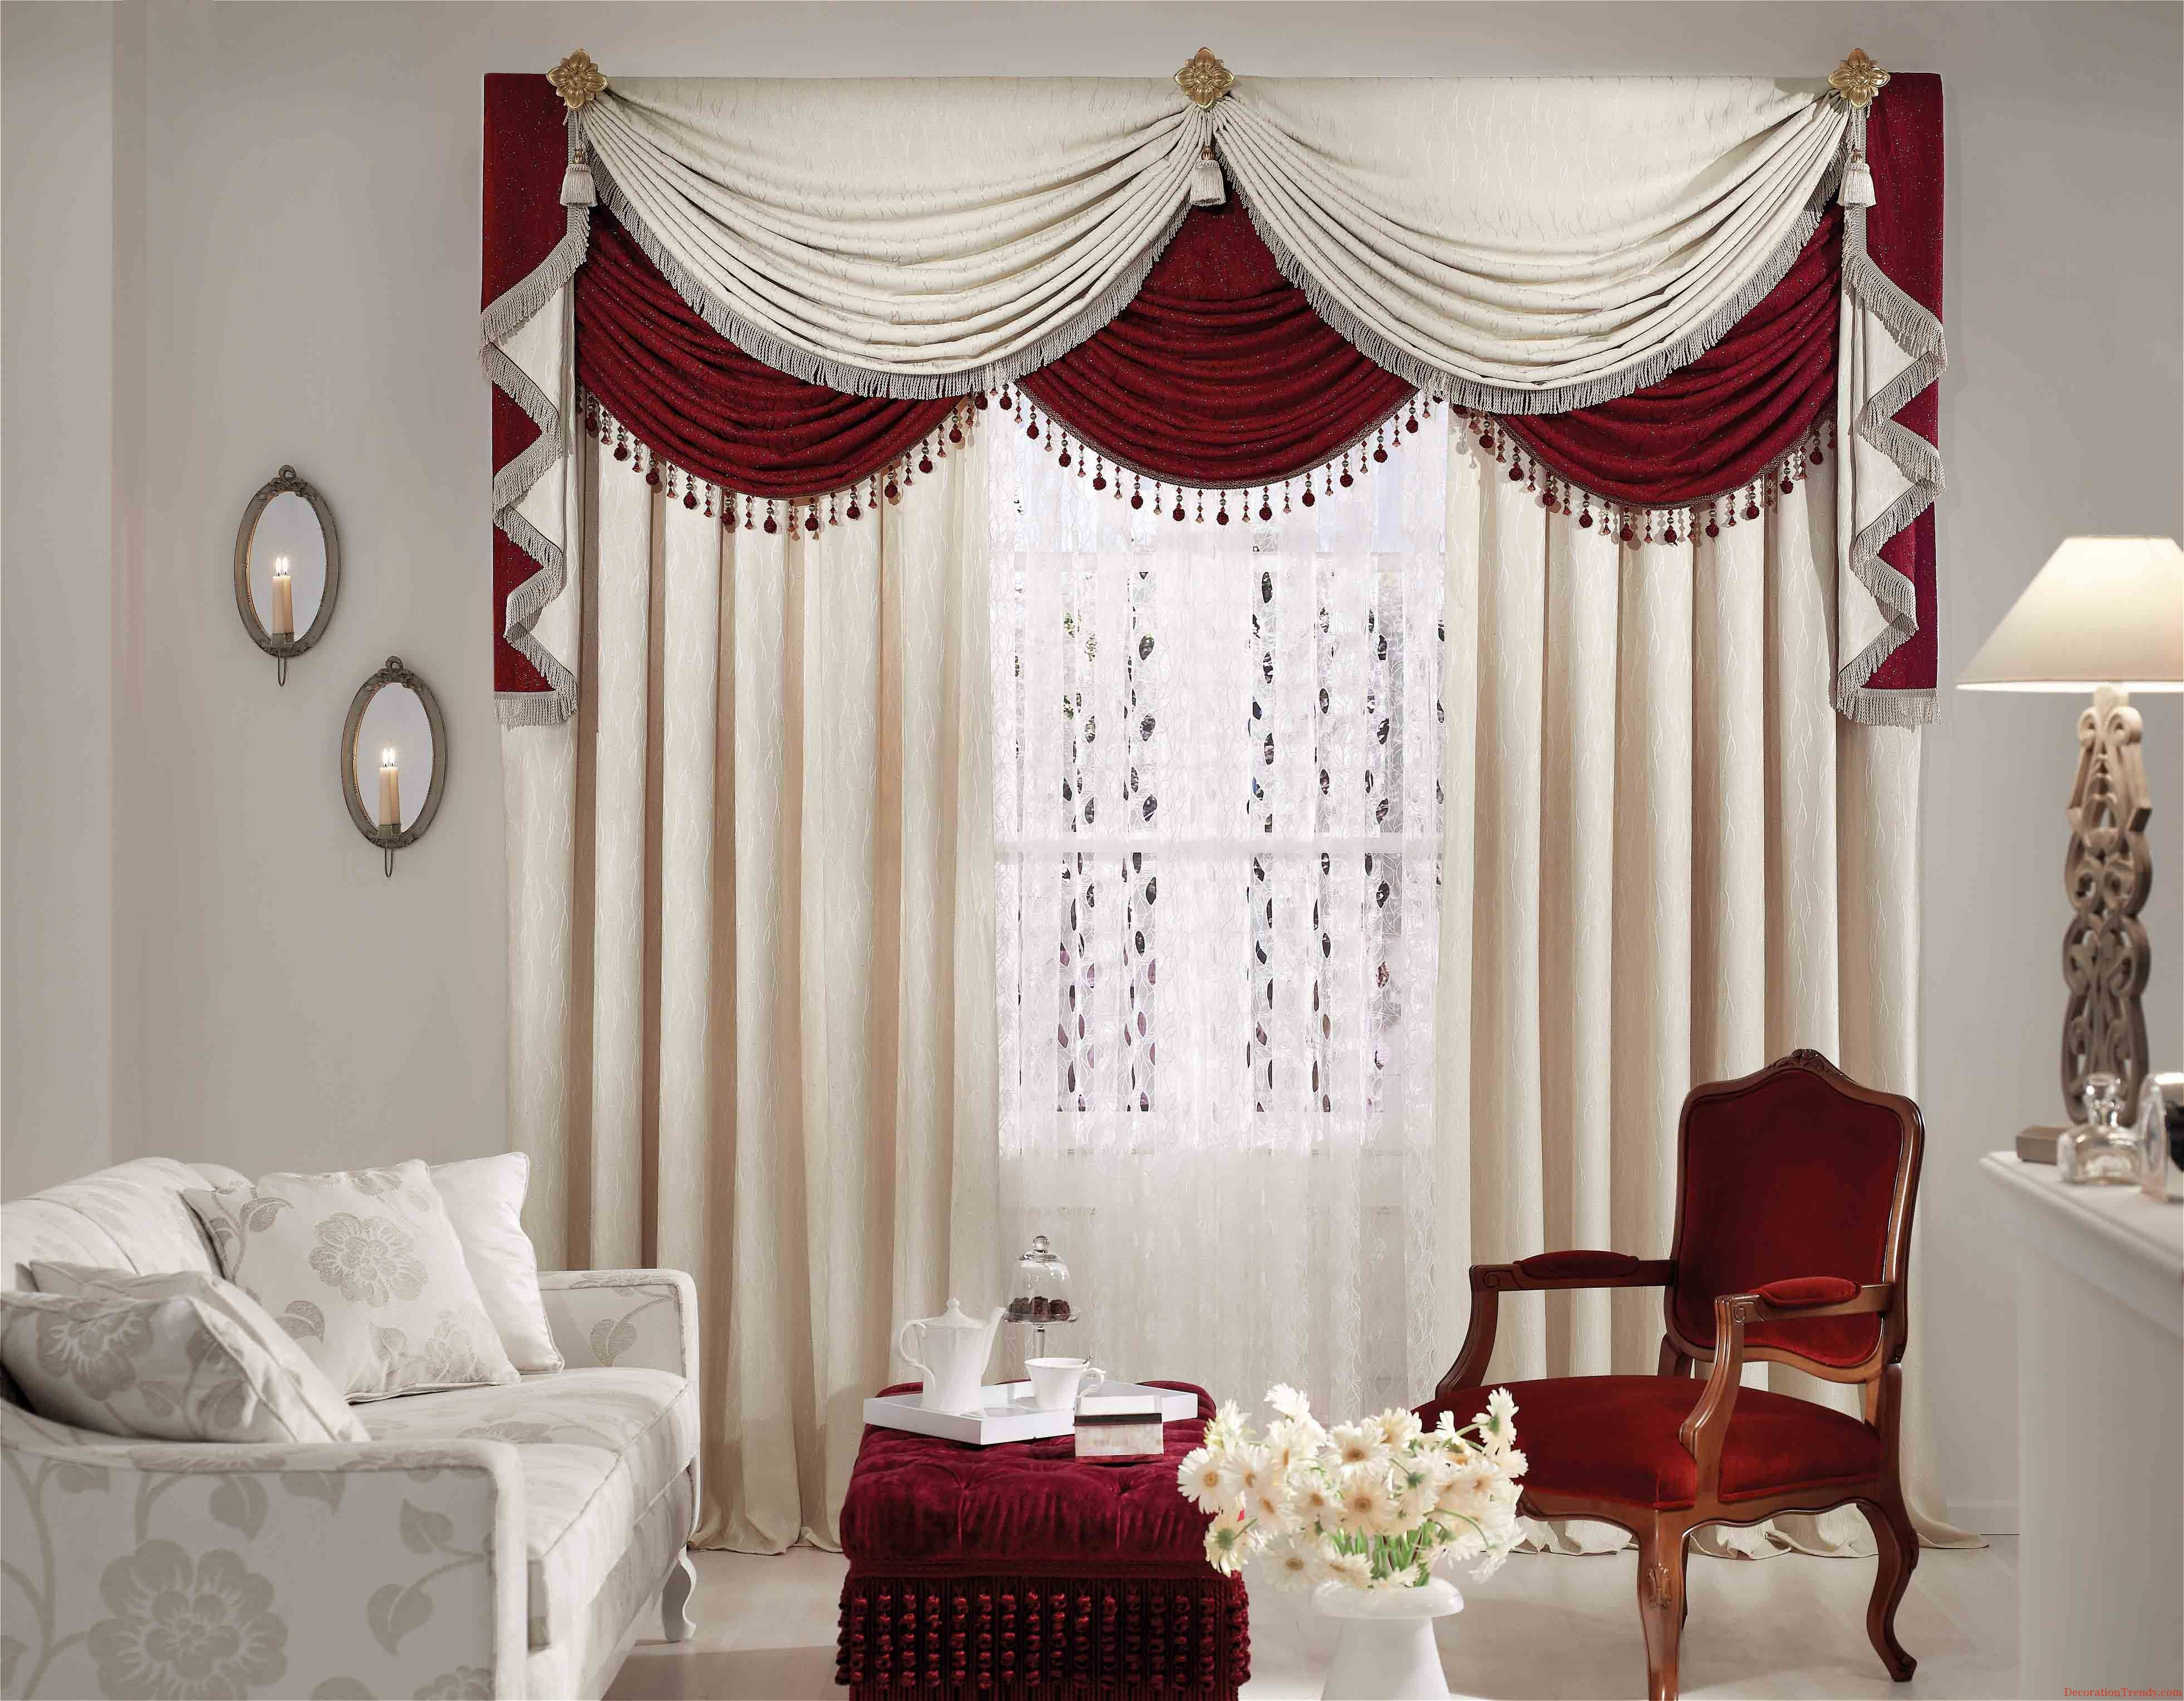 Living Room Curtains Designs Pleasing 40 Amazing & Stunning Curtain Design Ideas 2017  Curtain Designs Design Inspiration